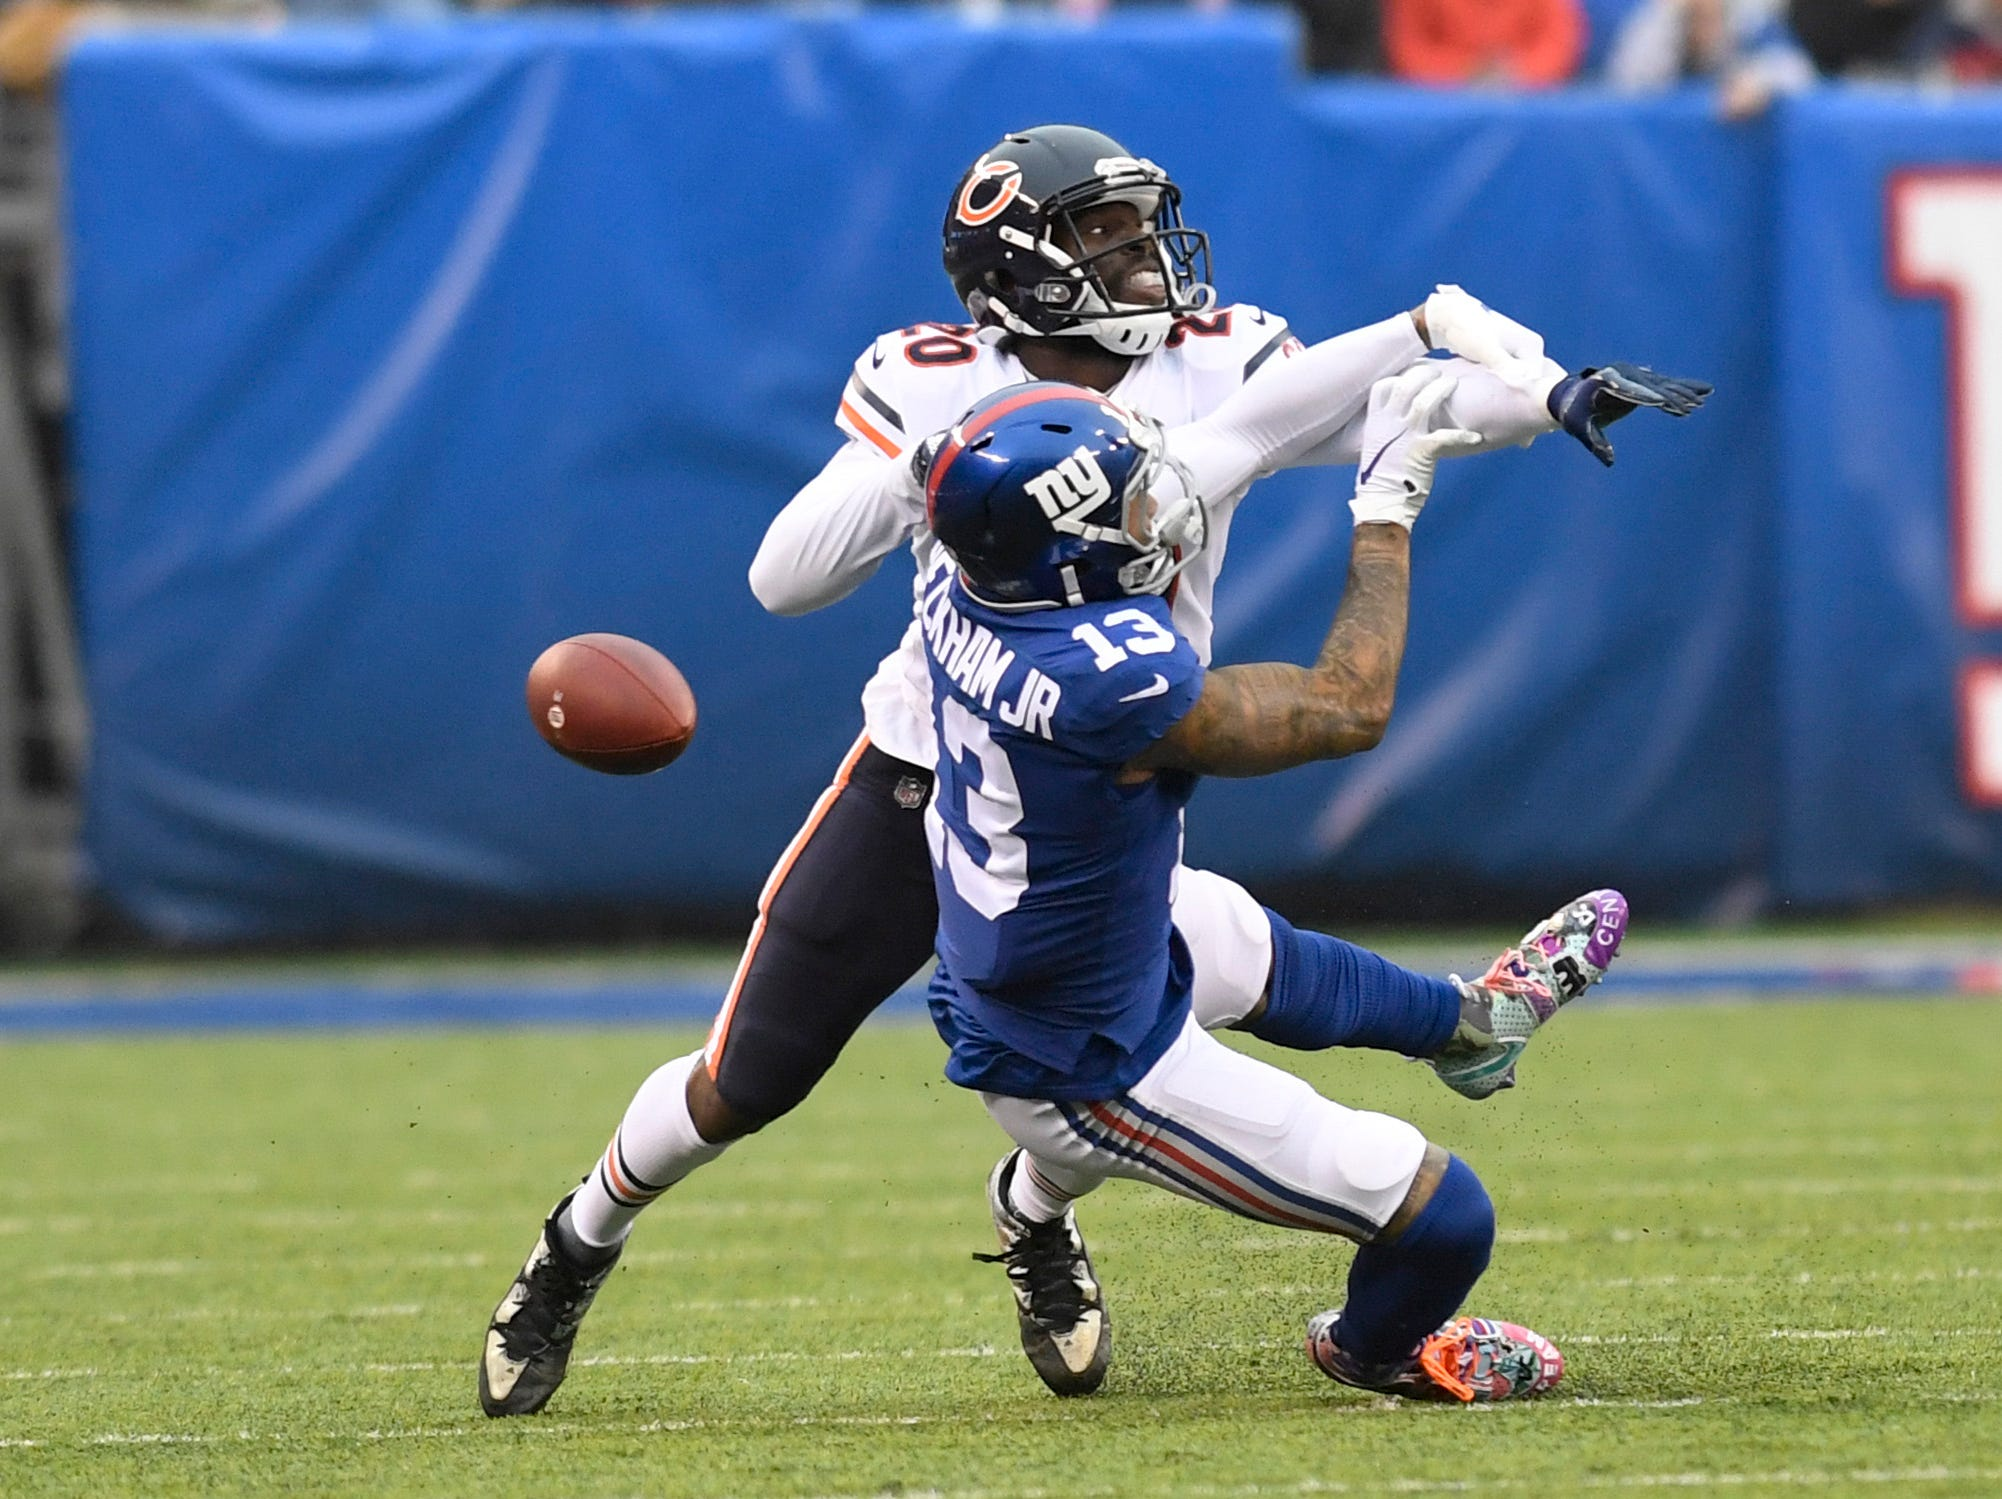 New York Giants wide receiver Odell Beckham Jr. (13) cannot complete the catch with coverage by Chicago Bears cornerback Prince Amukamara (20) in the first half. The New York Giants face the Chicago Bears on Sunday, Dec. 2, 2018, in East Rutherford.